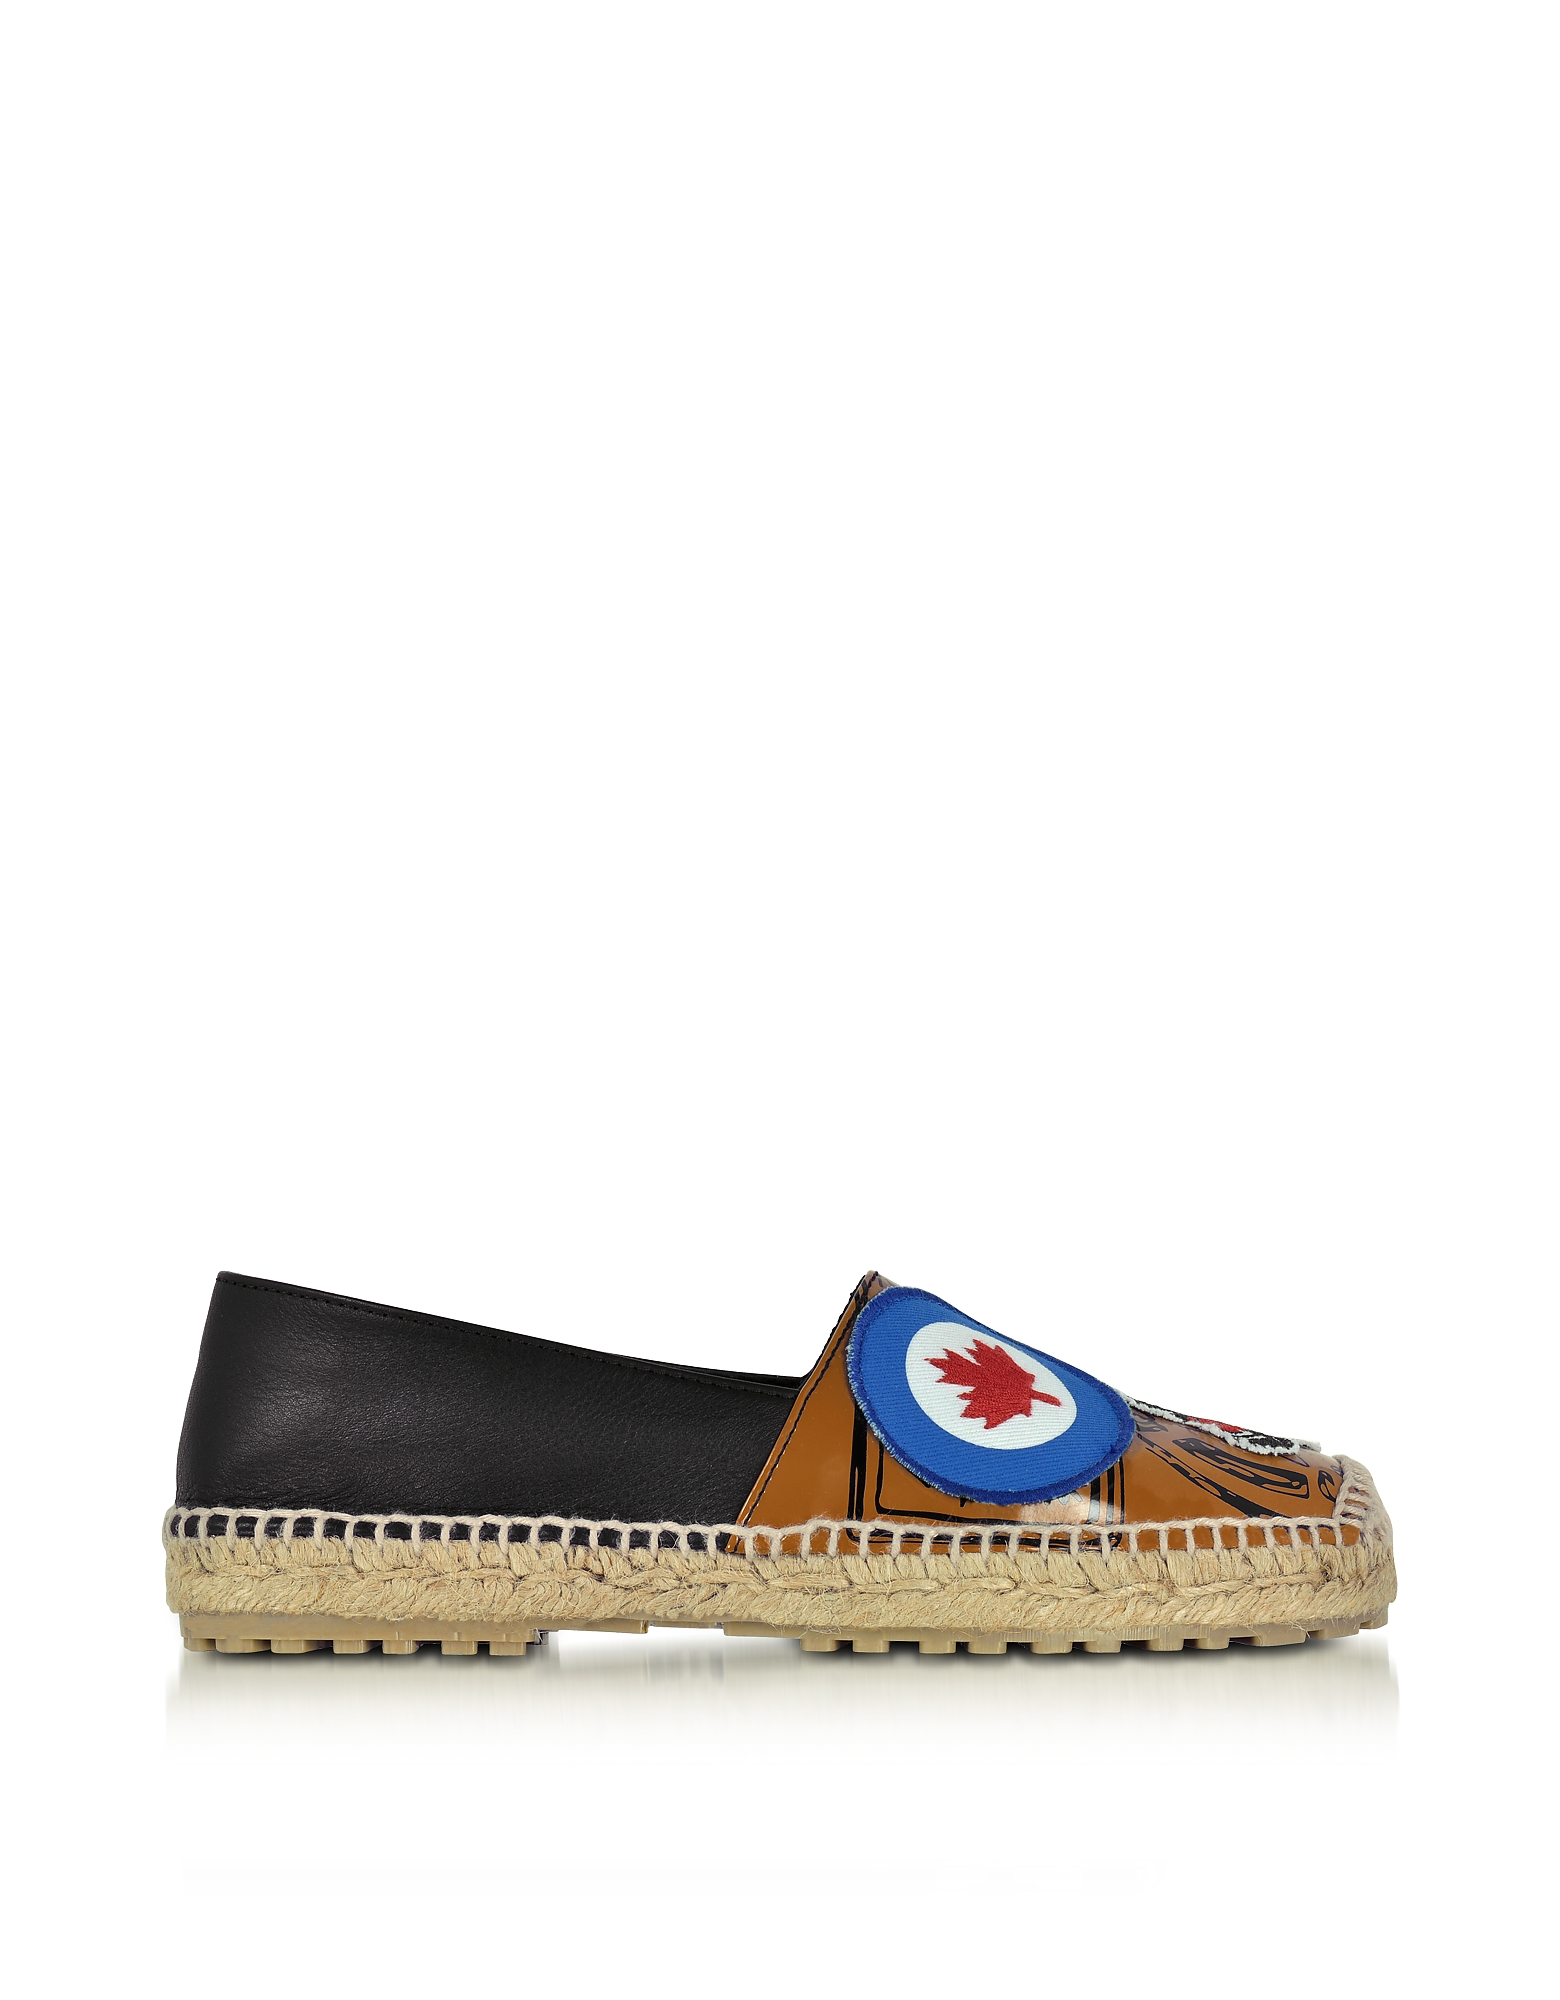 DSquared2 Shoes, Hackney Black and Beige Nappa Leather Flat Espadrilles w/Patches